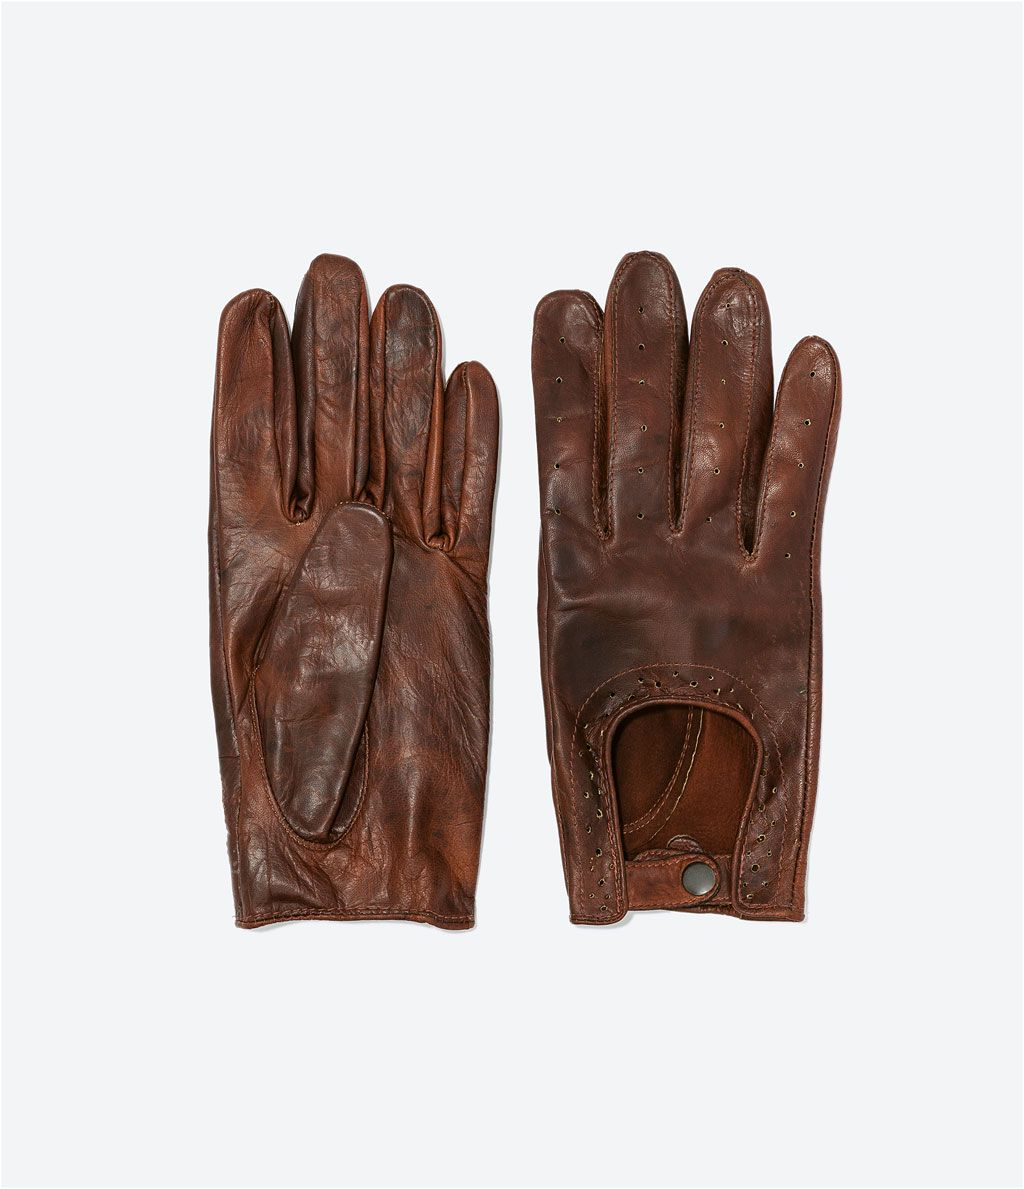 1d6964cebc8a0 PERFORATED LEATHER DRIVING GLOVES-Gloves and Umbrellas-Accessories ...